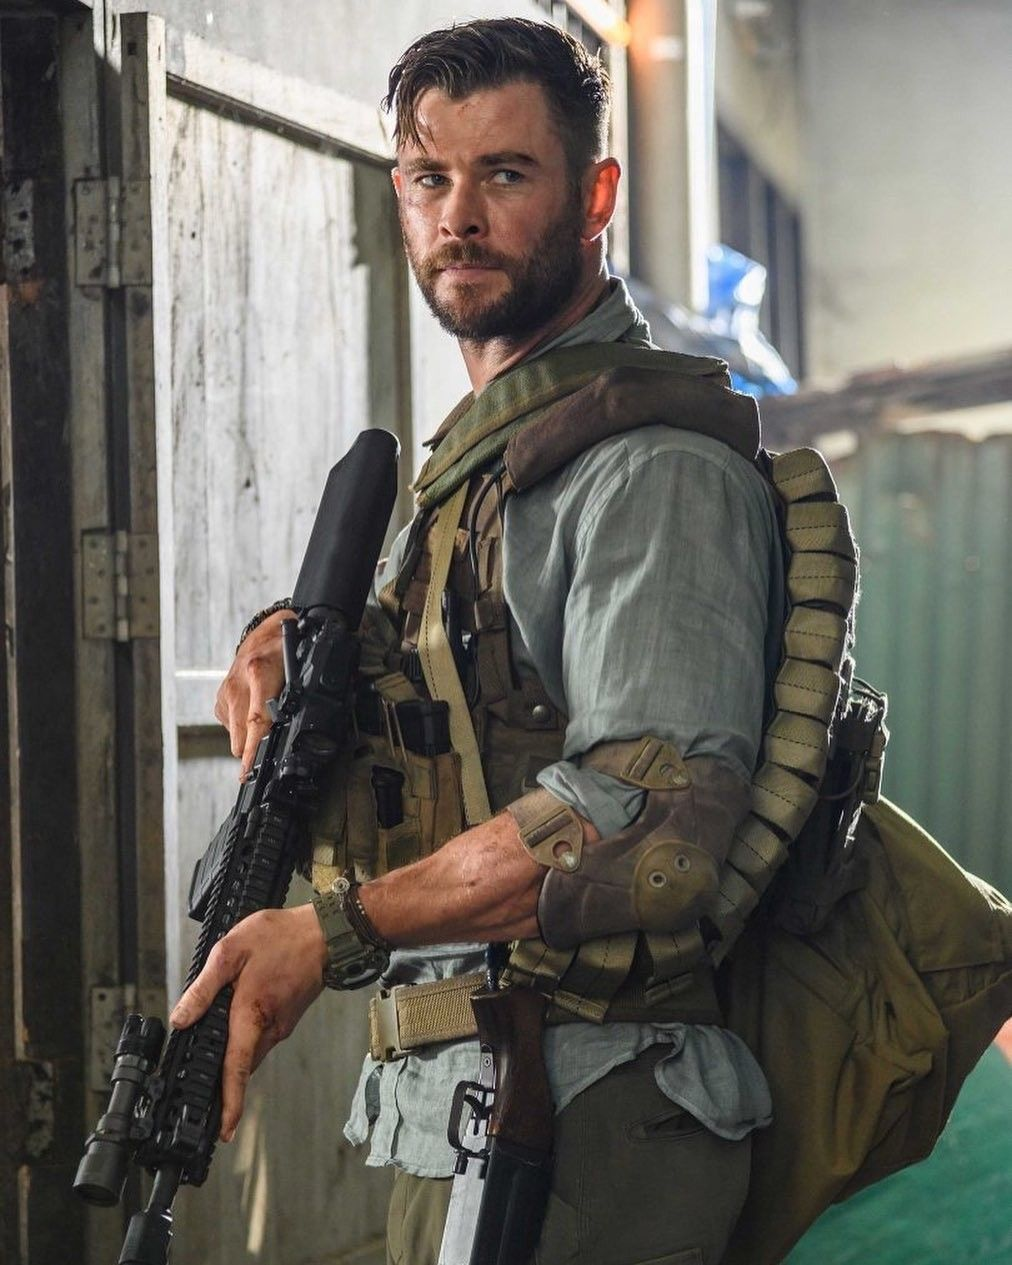 Pin By Stacey Vantassel On Chris Hemsworth In 2020 Chris Hemsworth Movies Hemsworth Chris Hemsworth